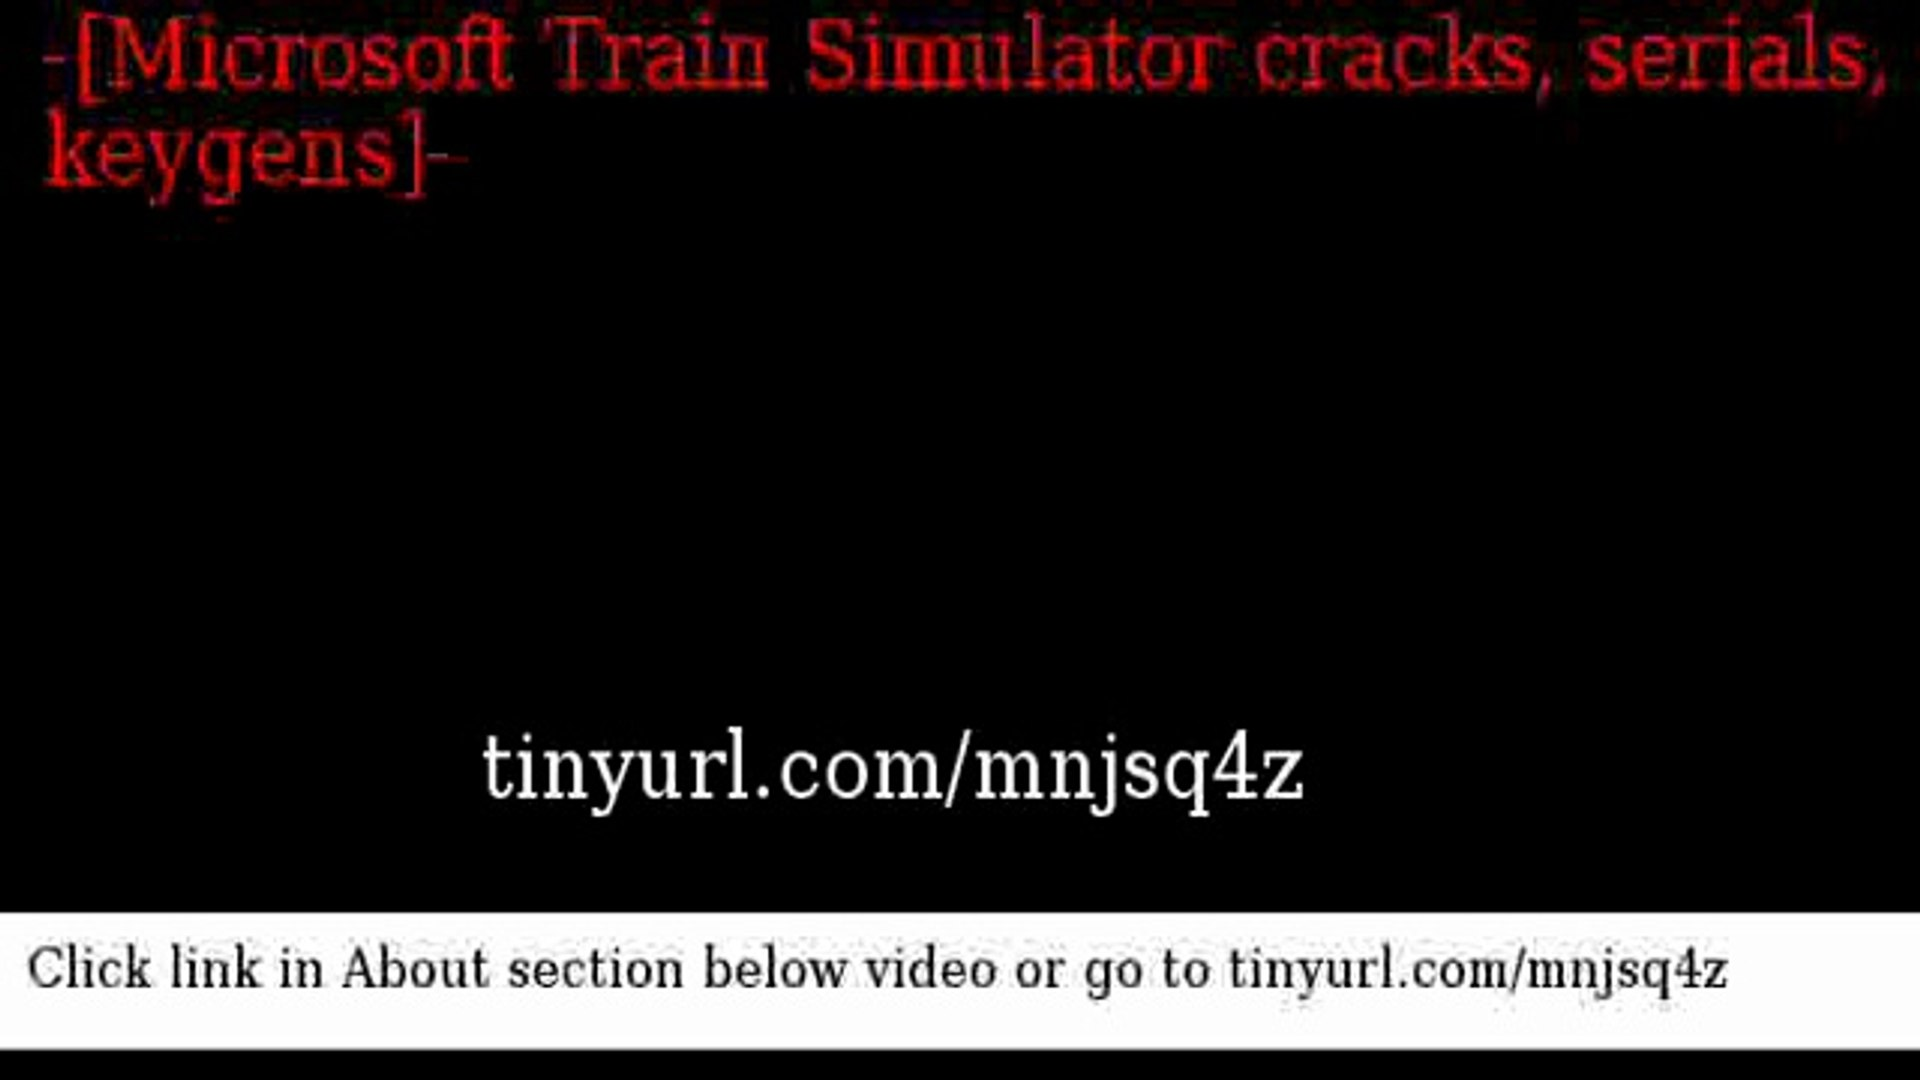 Microsoft Train Simulator crack serial keygen